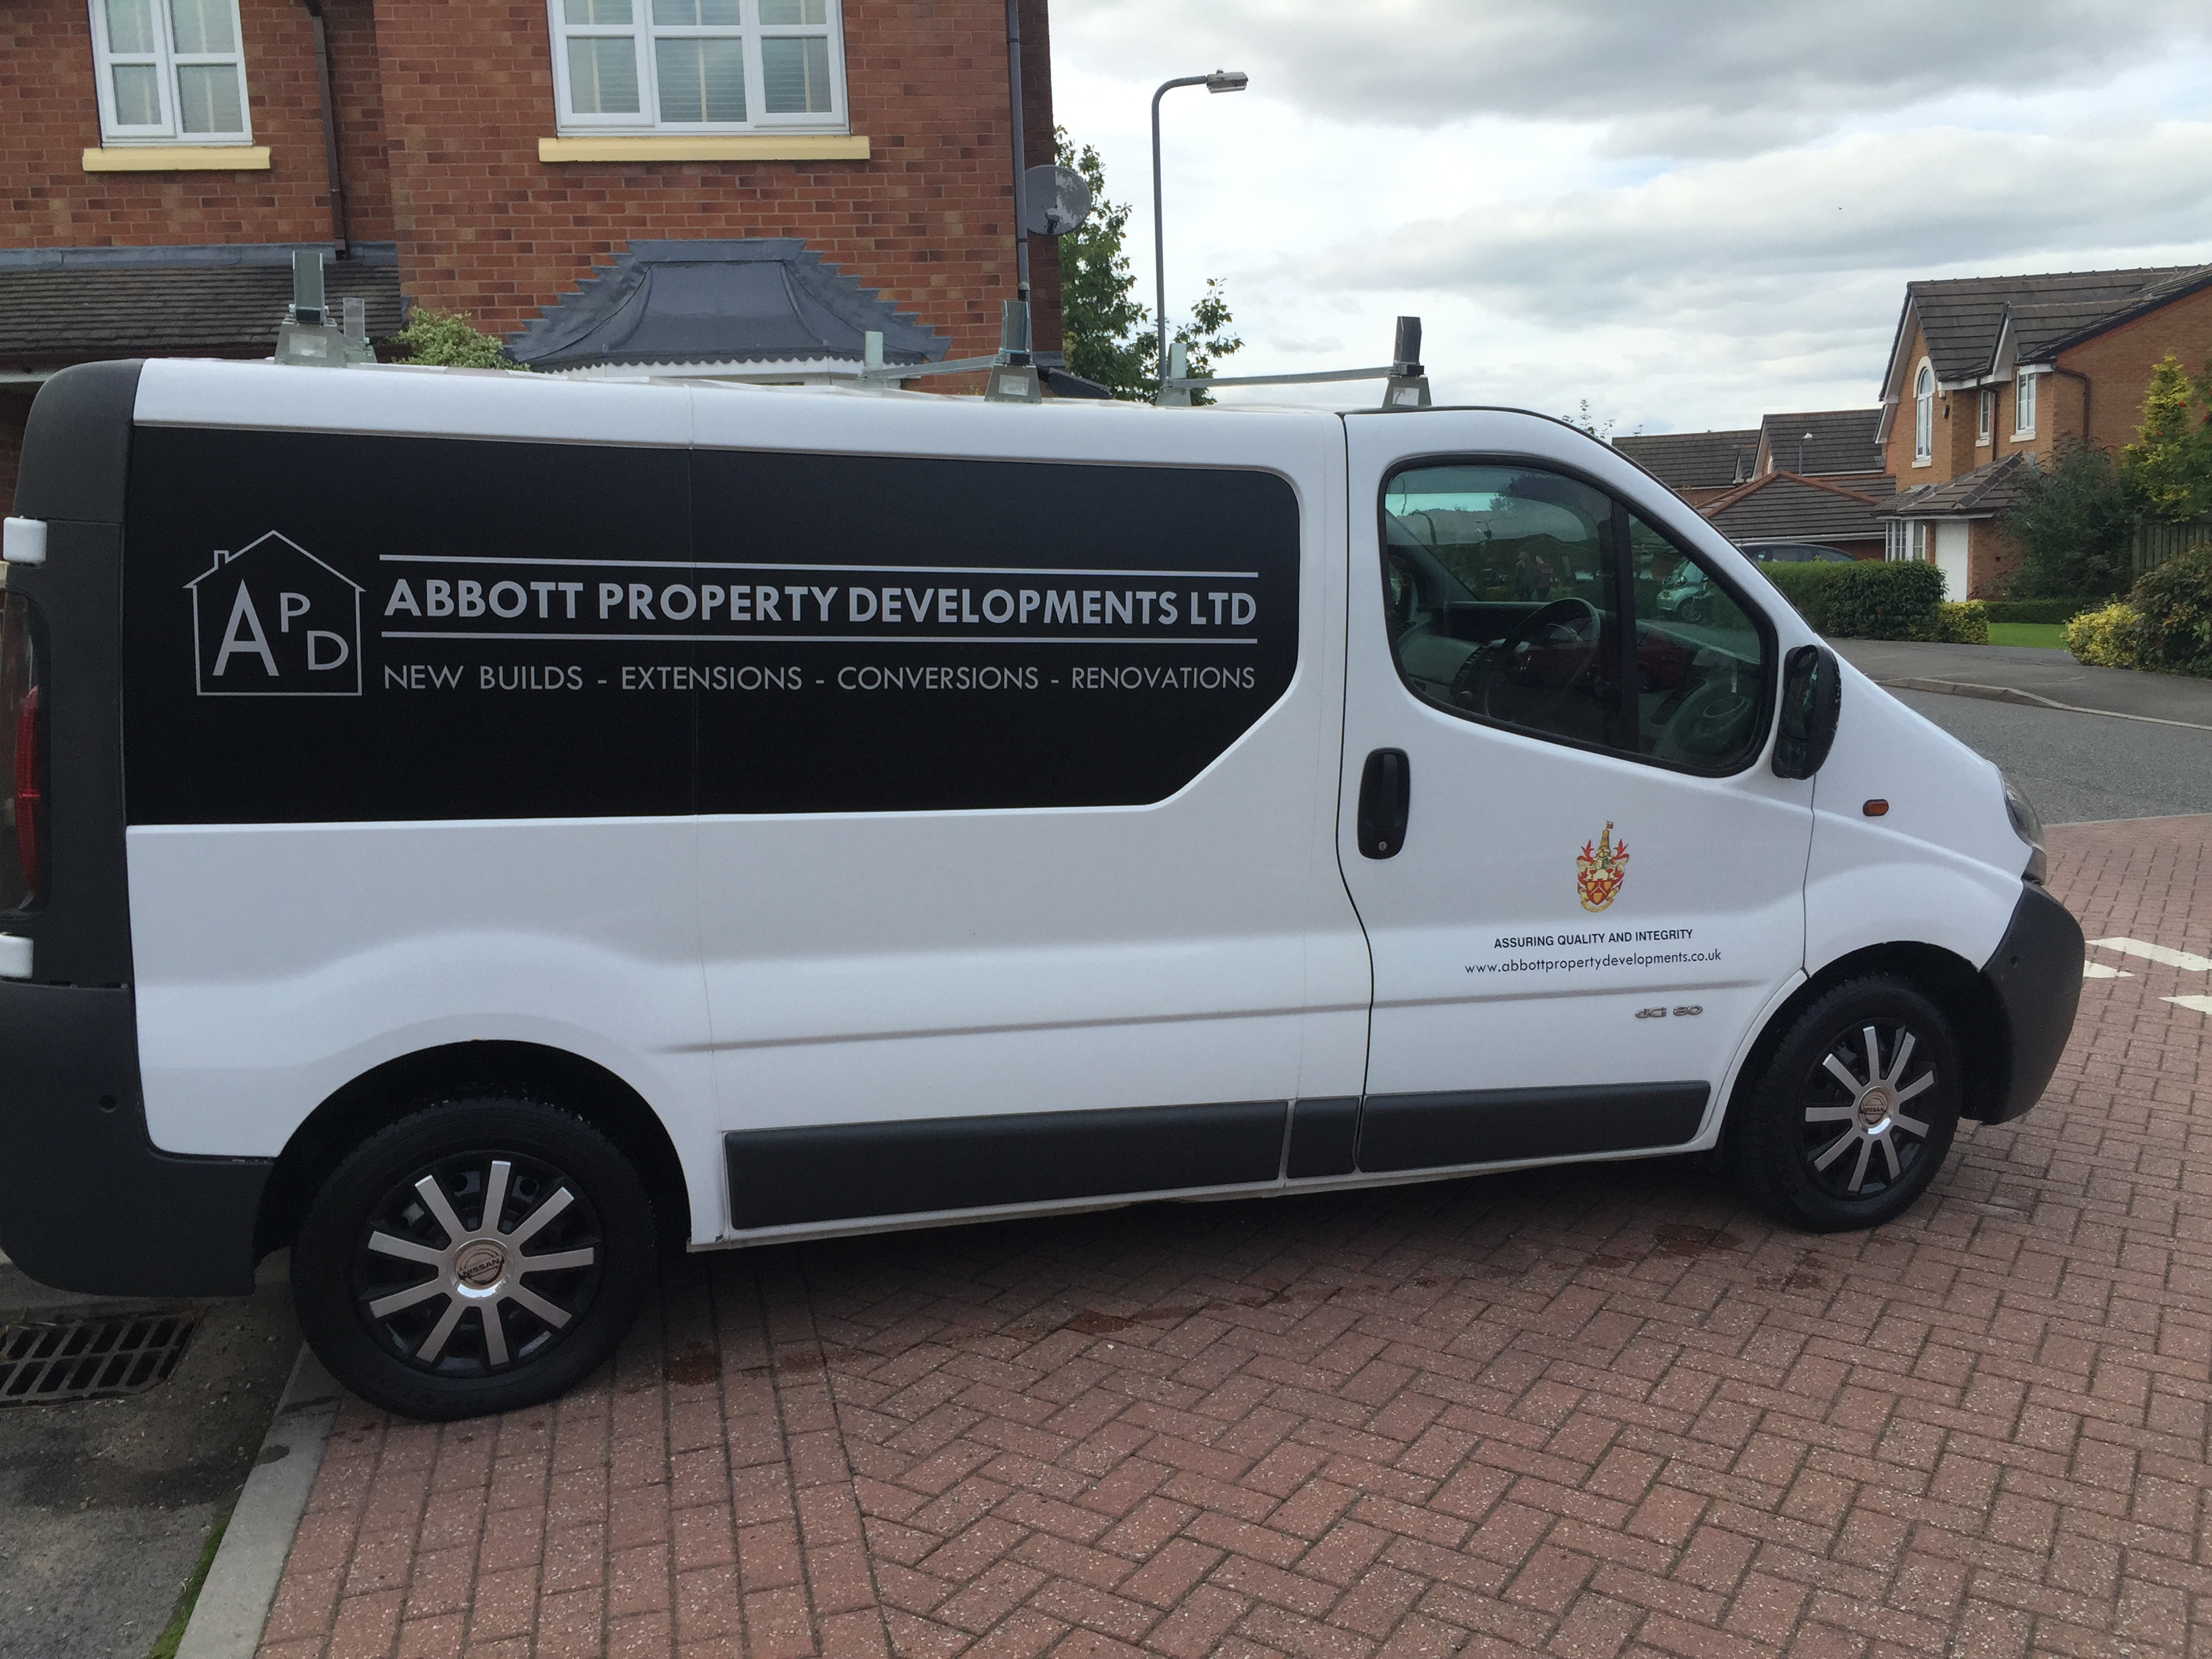 Abbott Property Developments Van